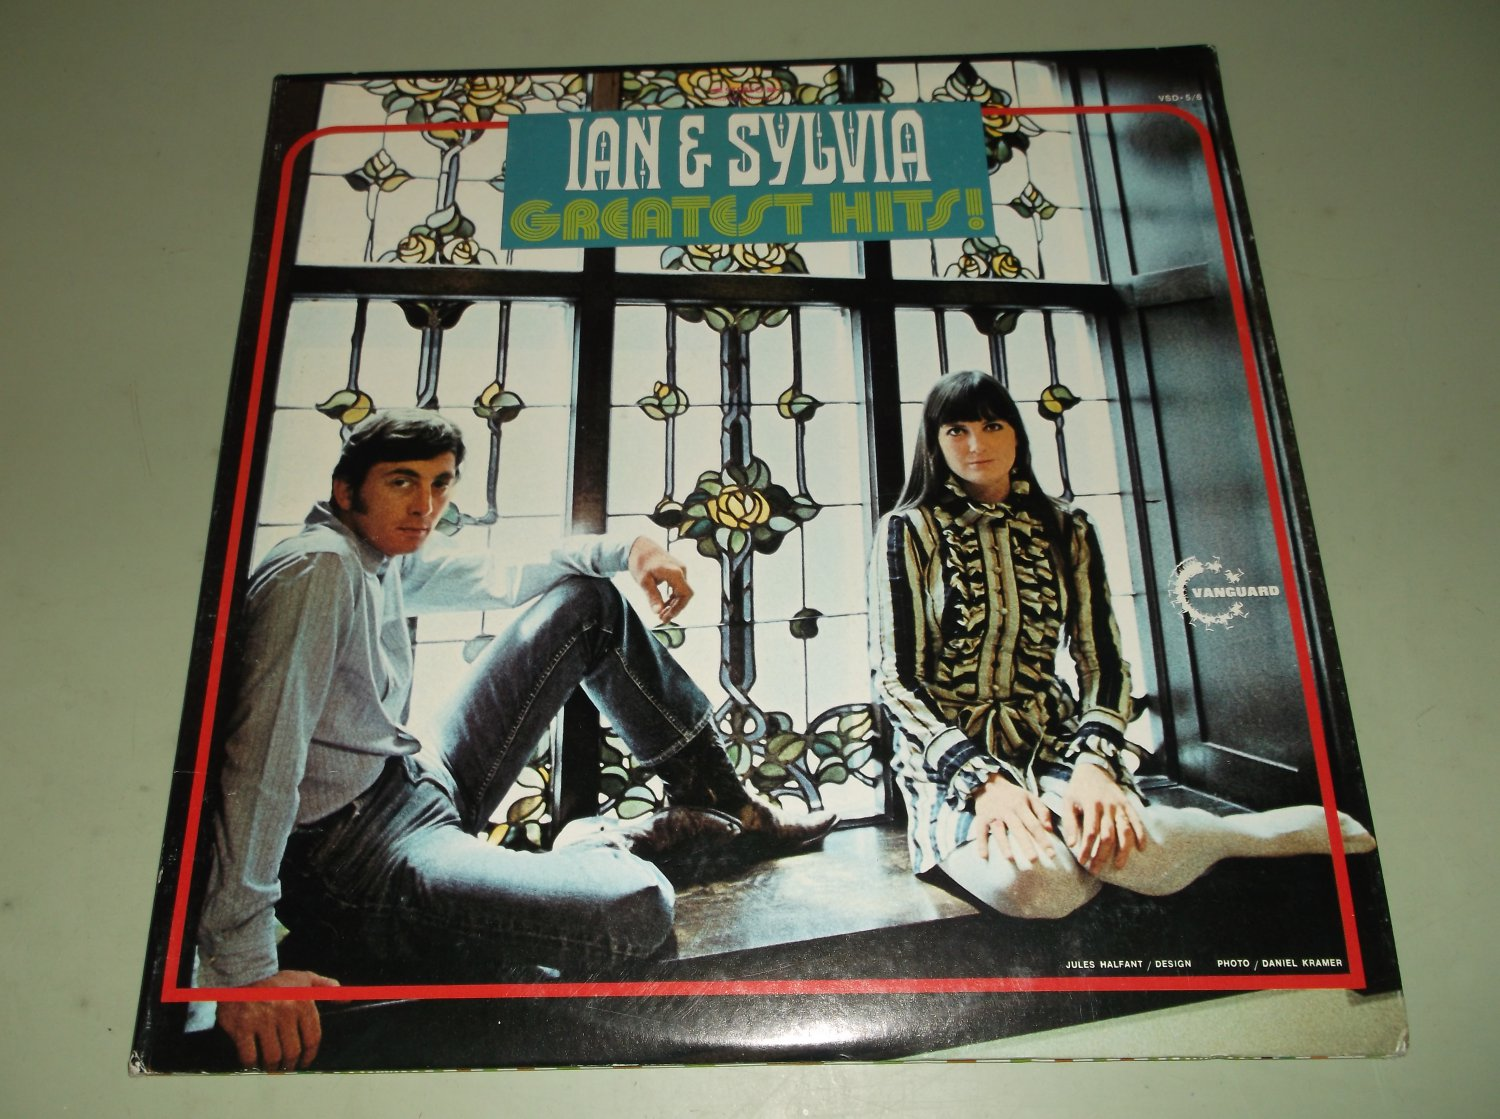 Ian & Sylvia - Greatest Hits  - VANGUARD 5/6 - Folk 2 LP's